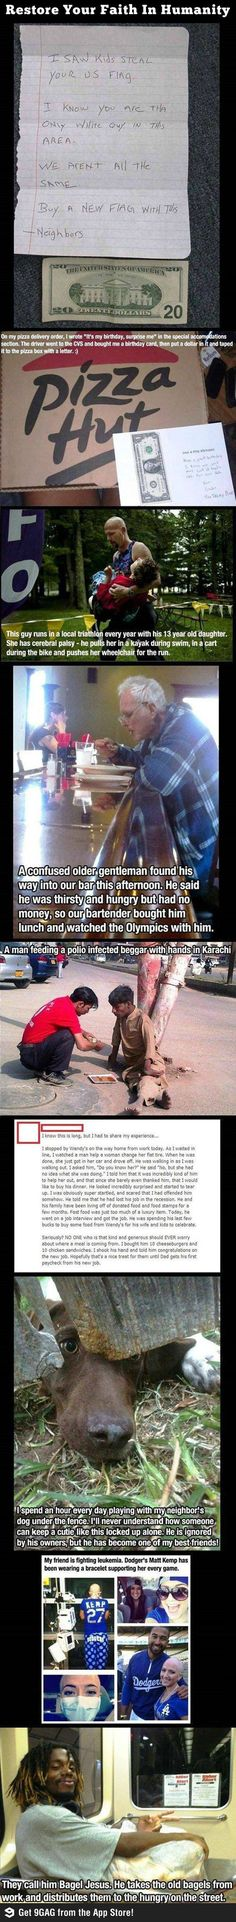 True acts of awesome. And yes, I teared up. Don't judge me.